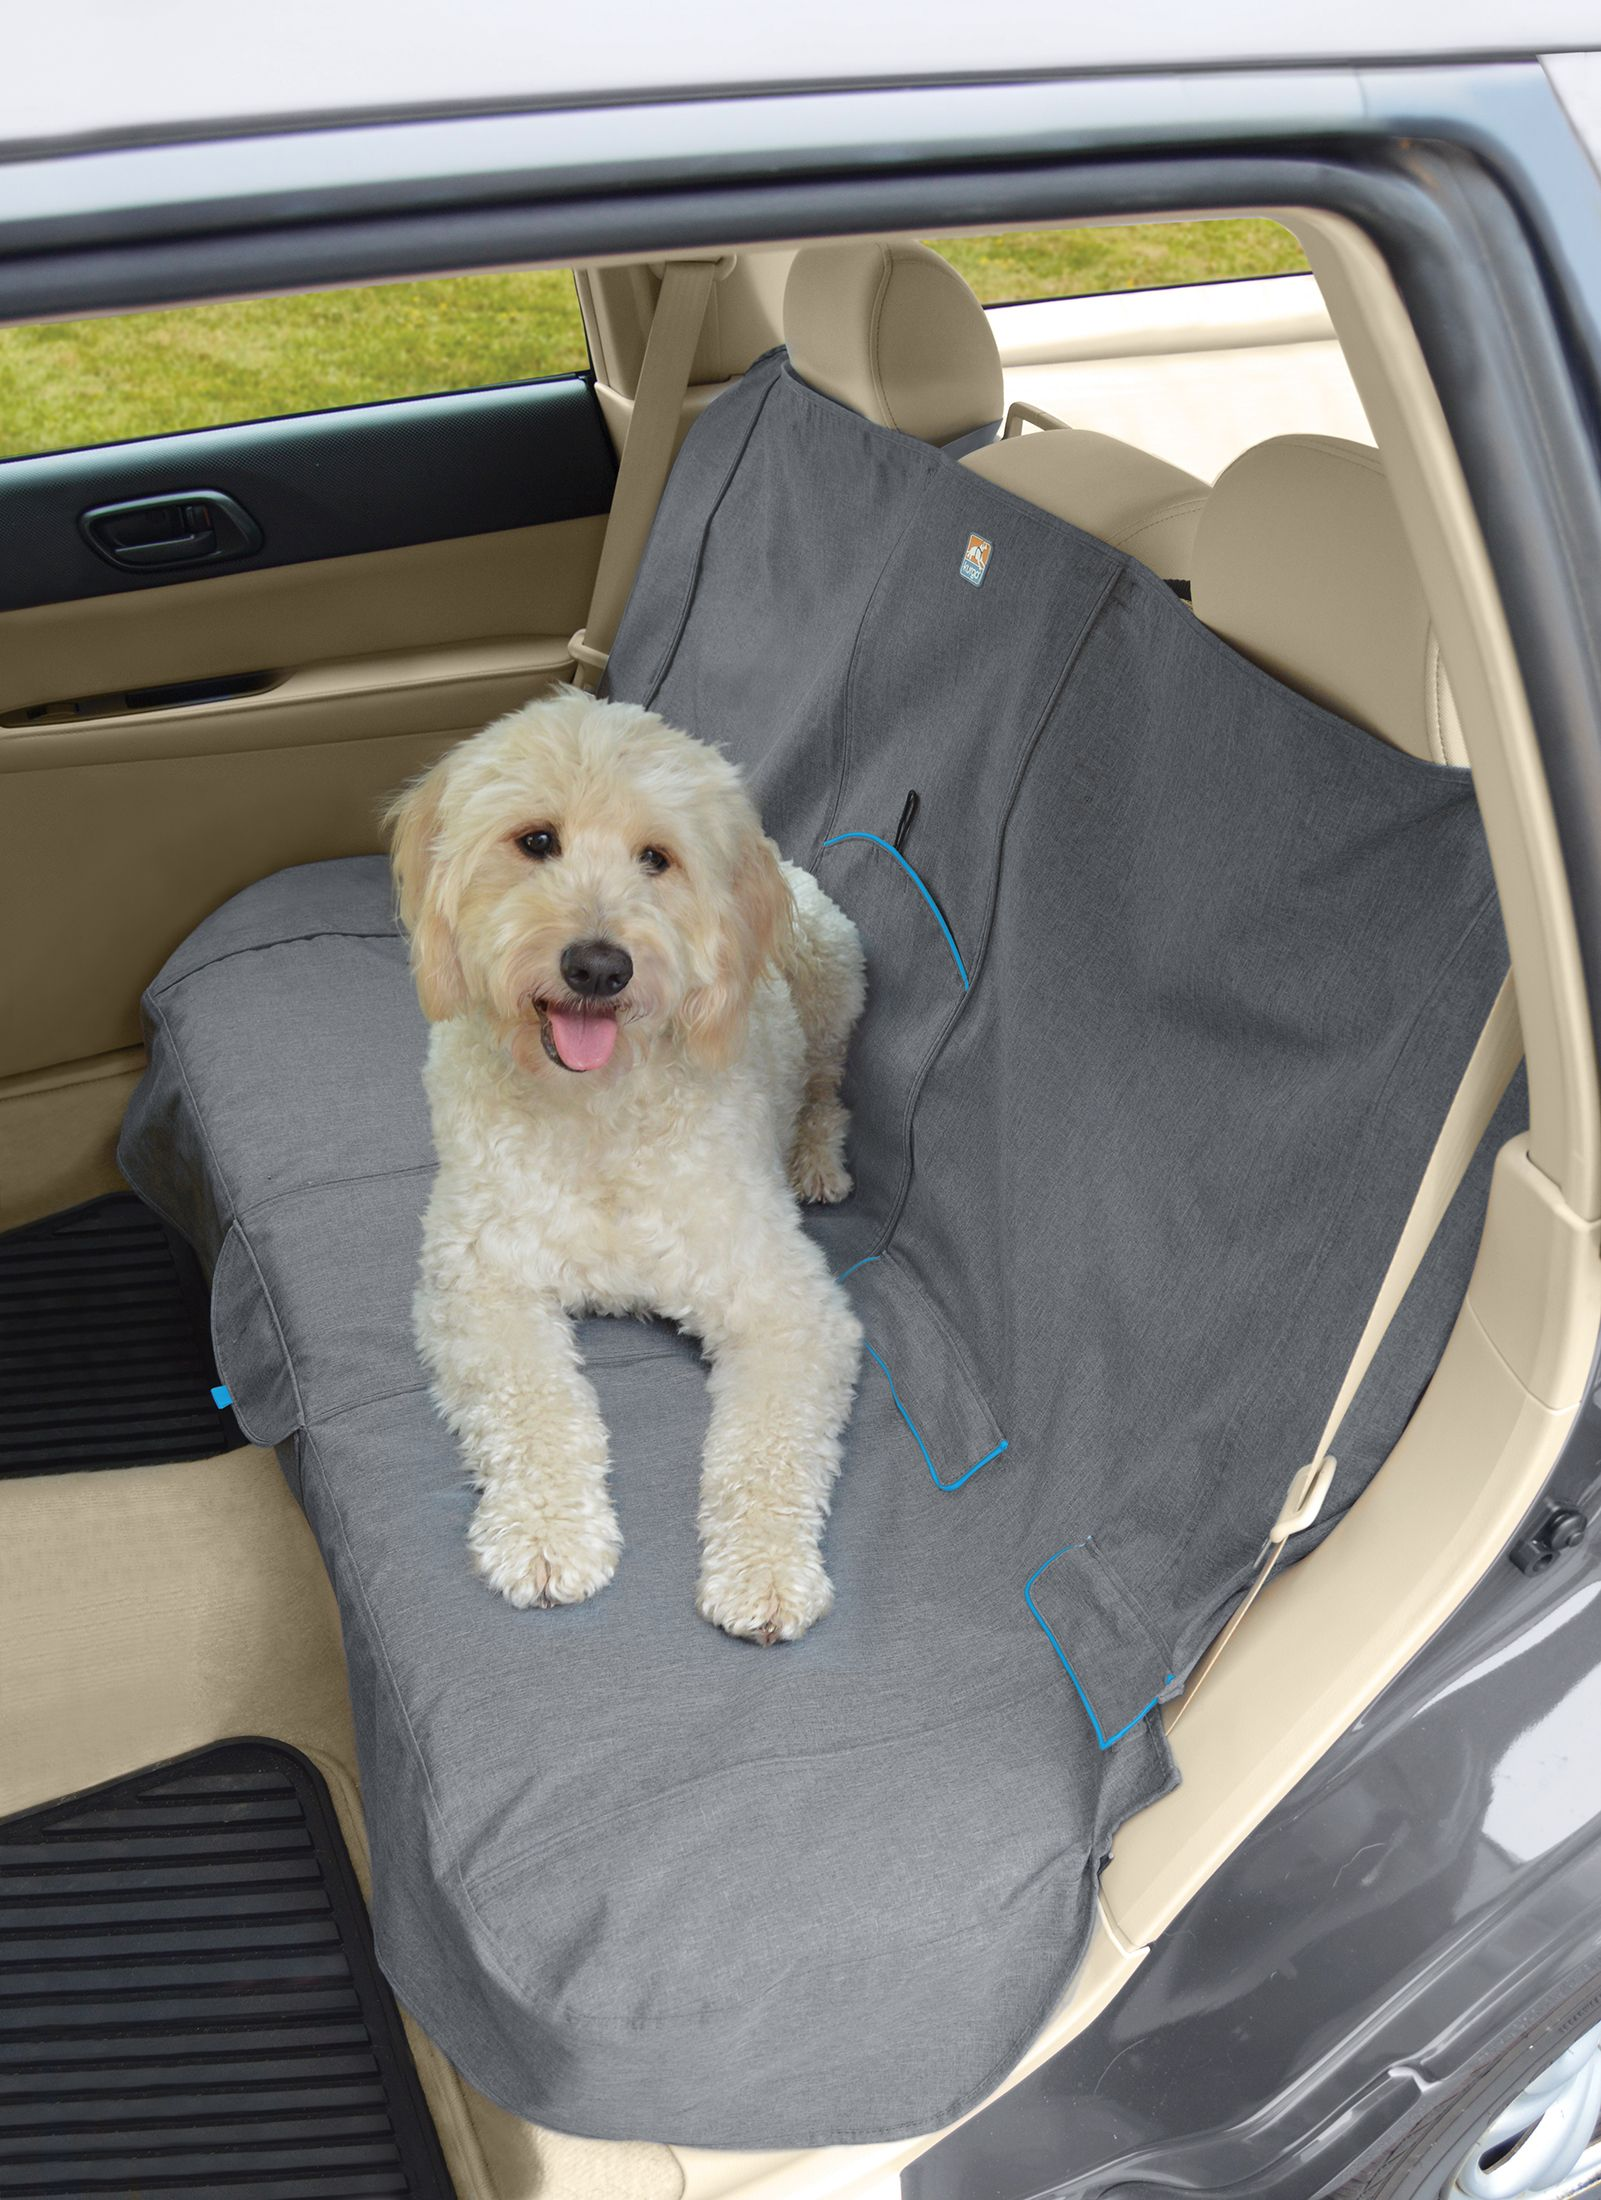 Dog Seat Covers - Kurgo Bench Seat Cover, Heather Pattern, Charcoal Grey